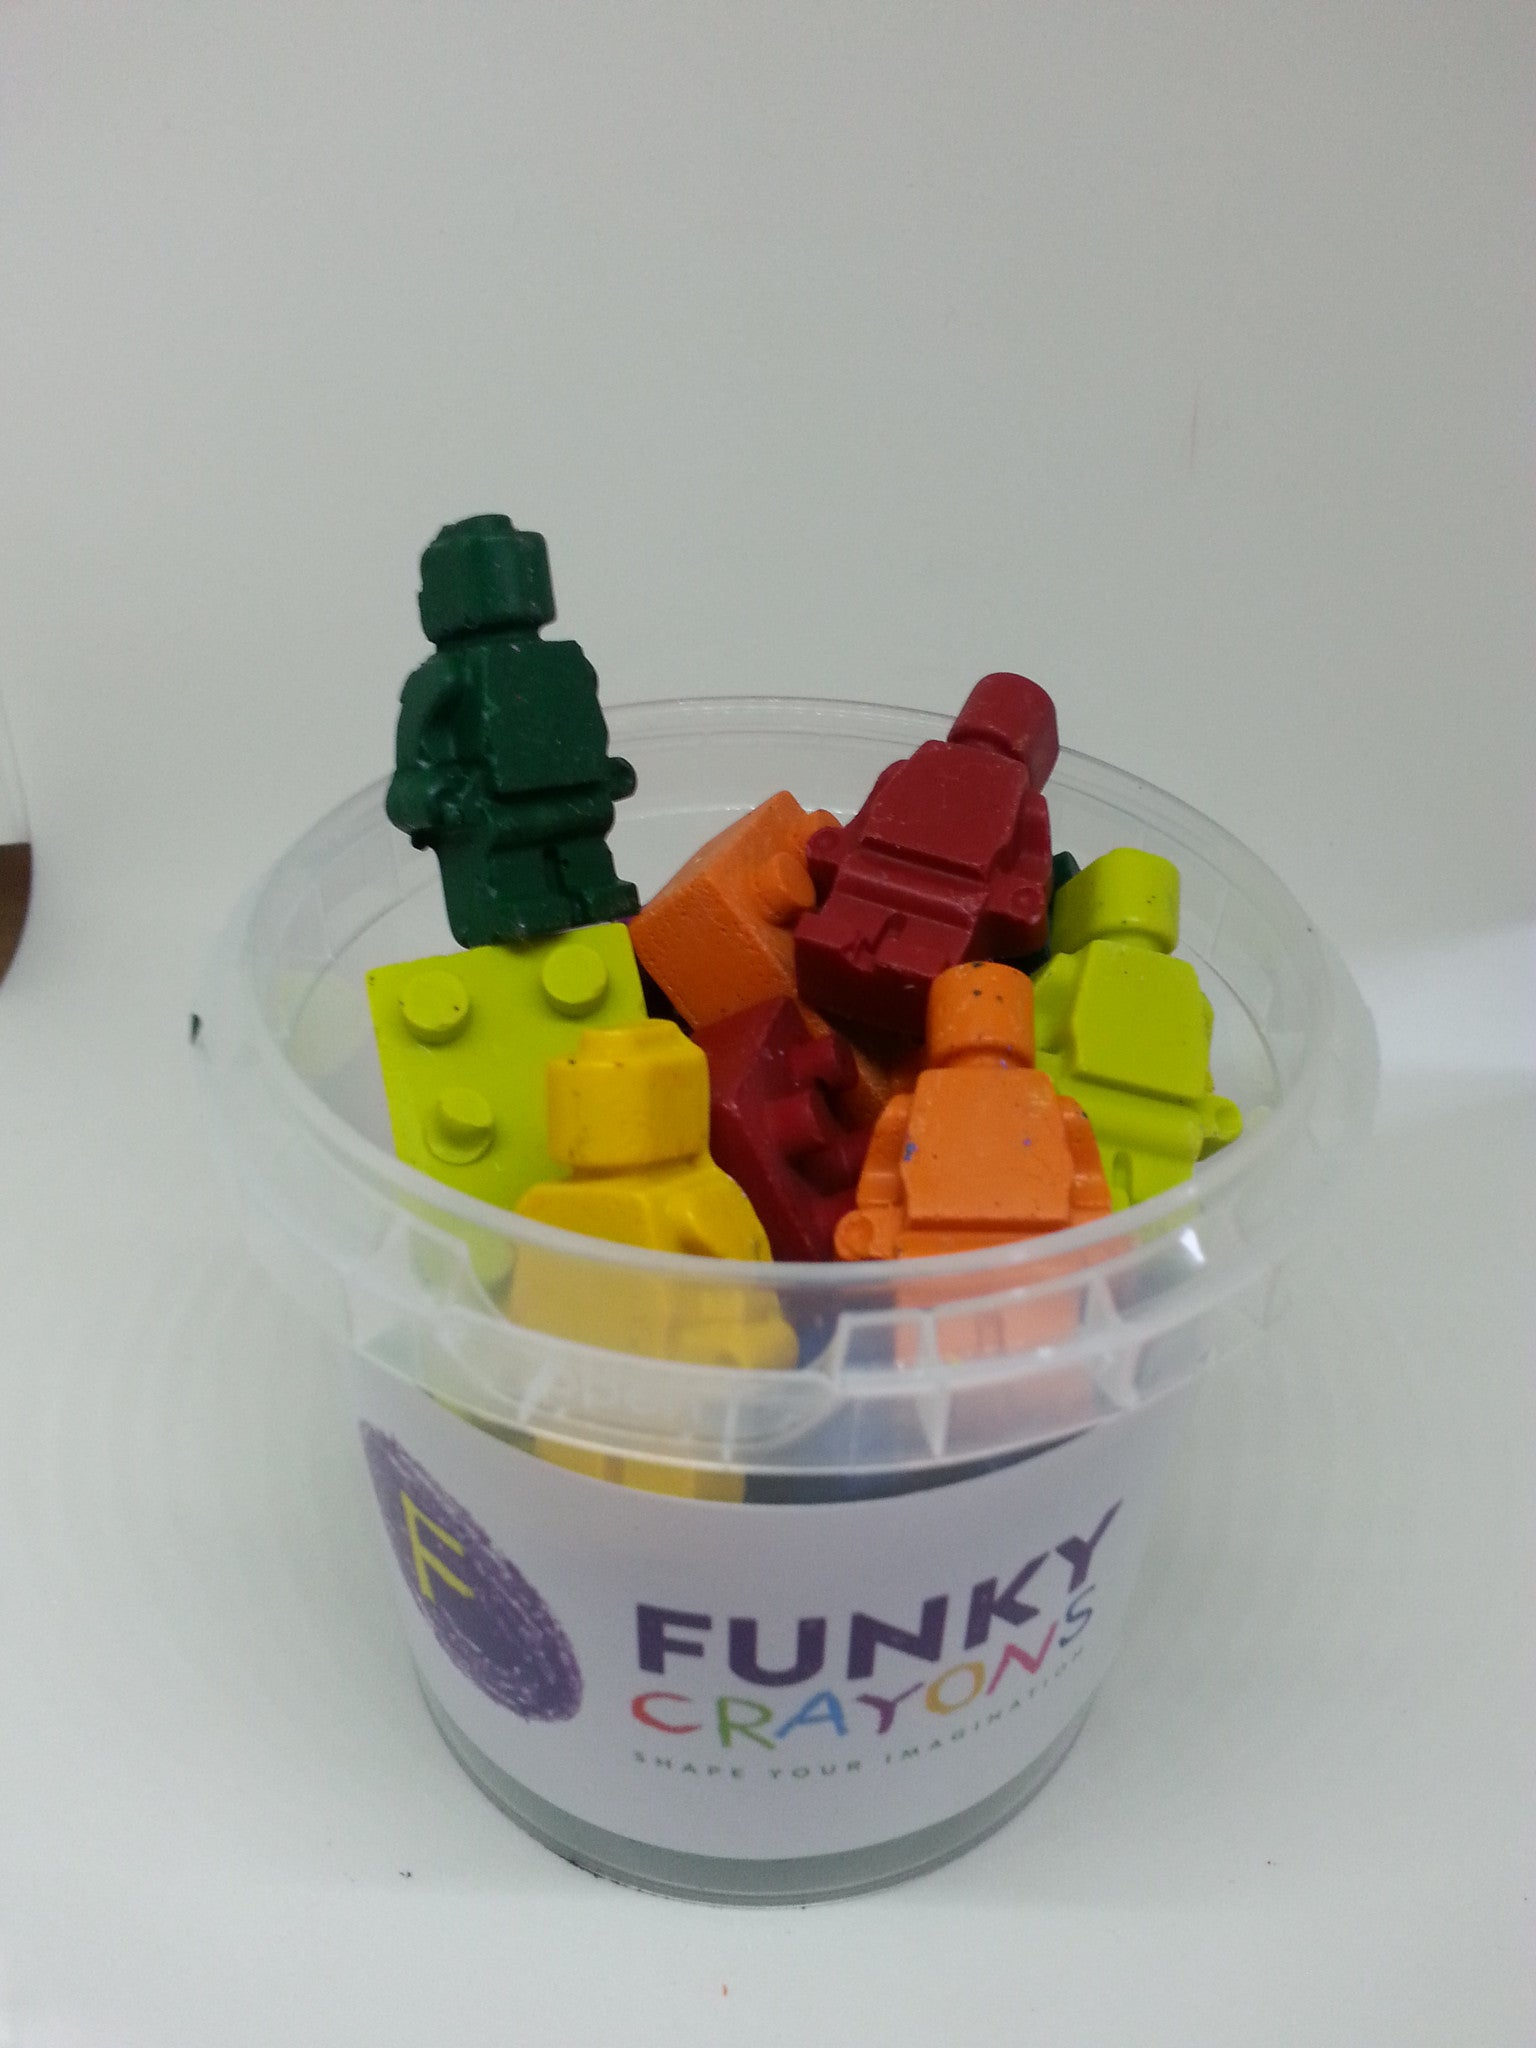 Tub of building brick Funky Crayons